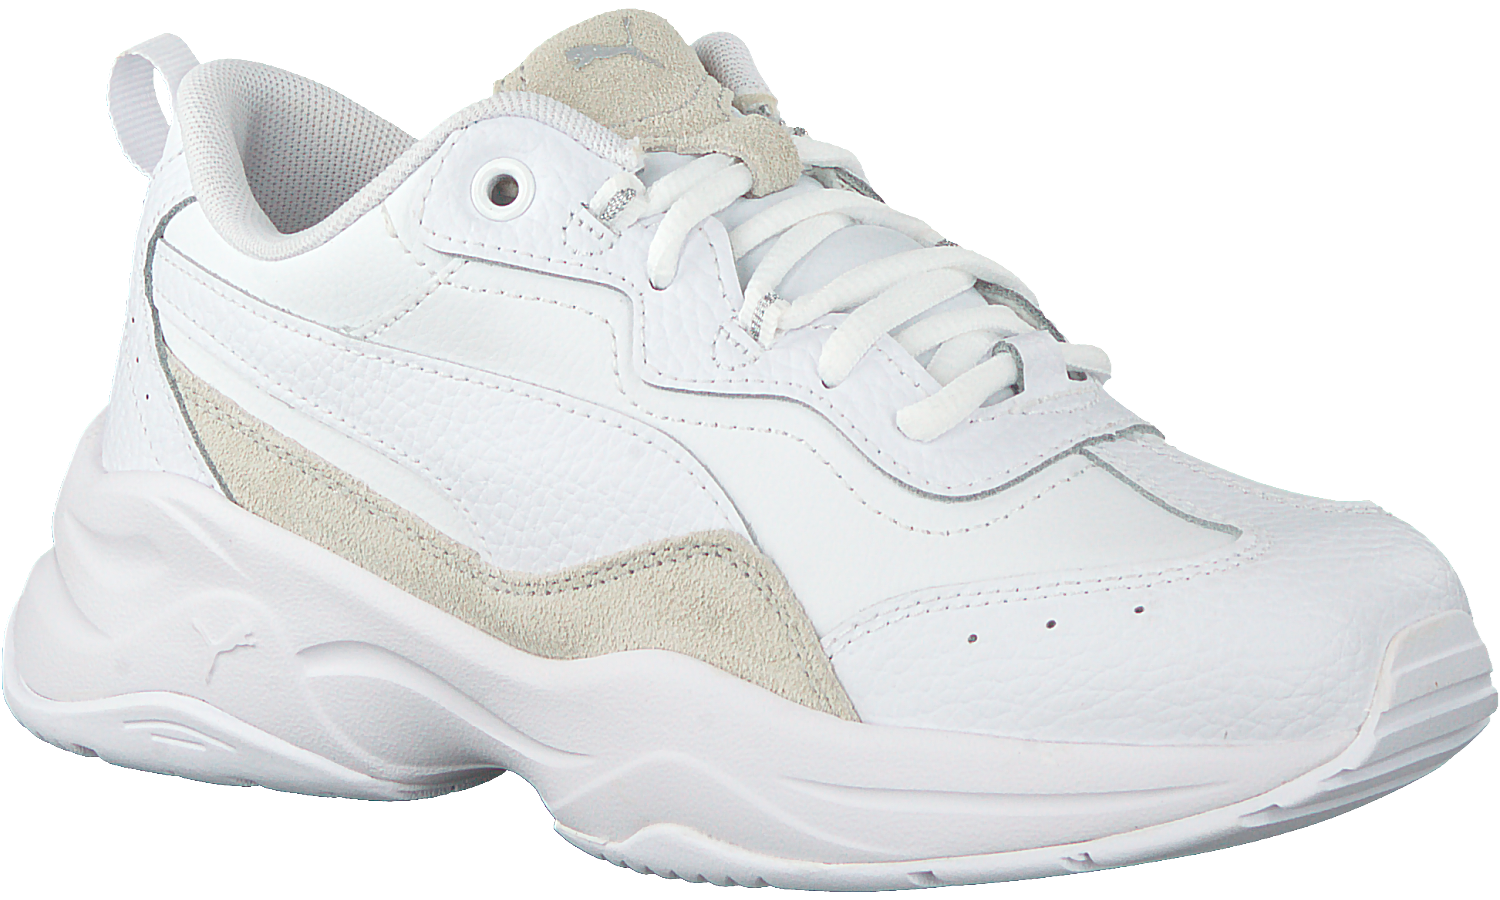 White PUMA Low sneakers CILIA LUX - Omoda.com